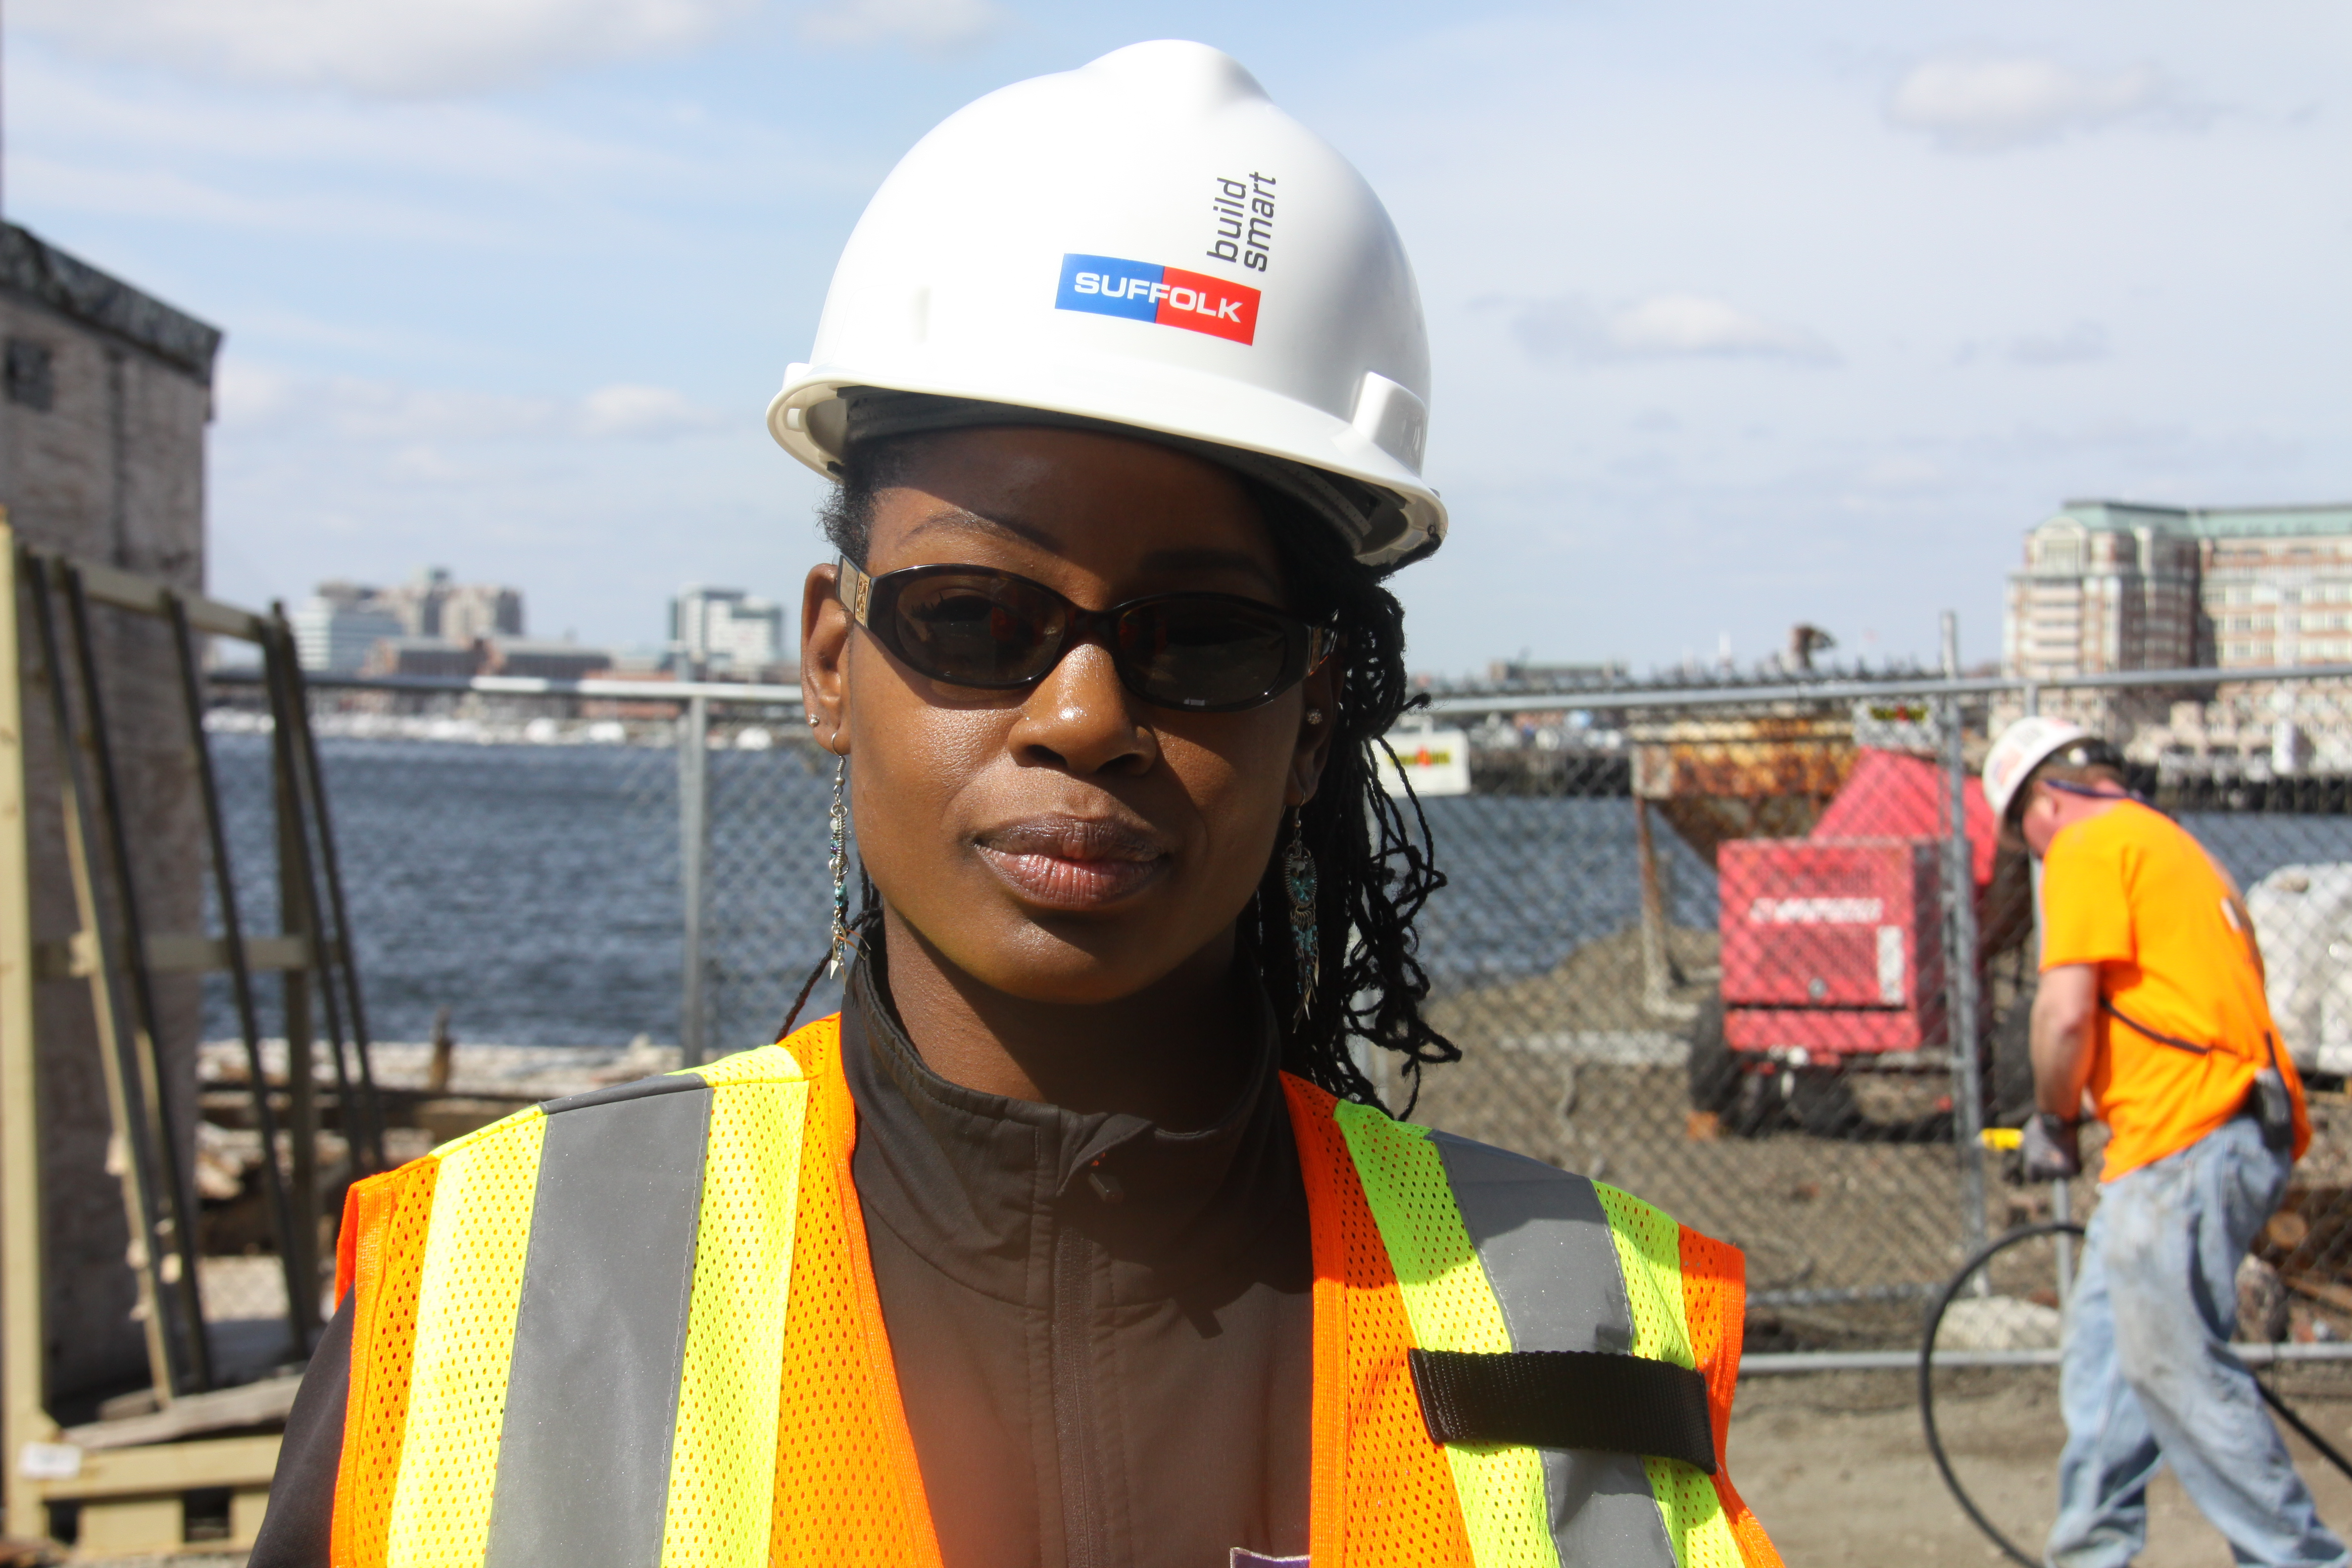 on campus a push to get more young women into trades